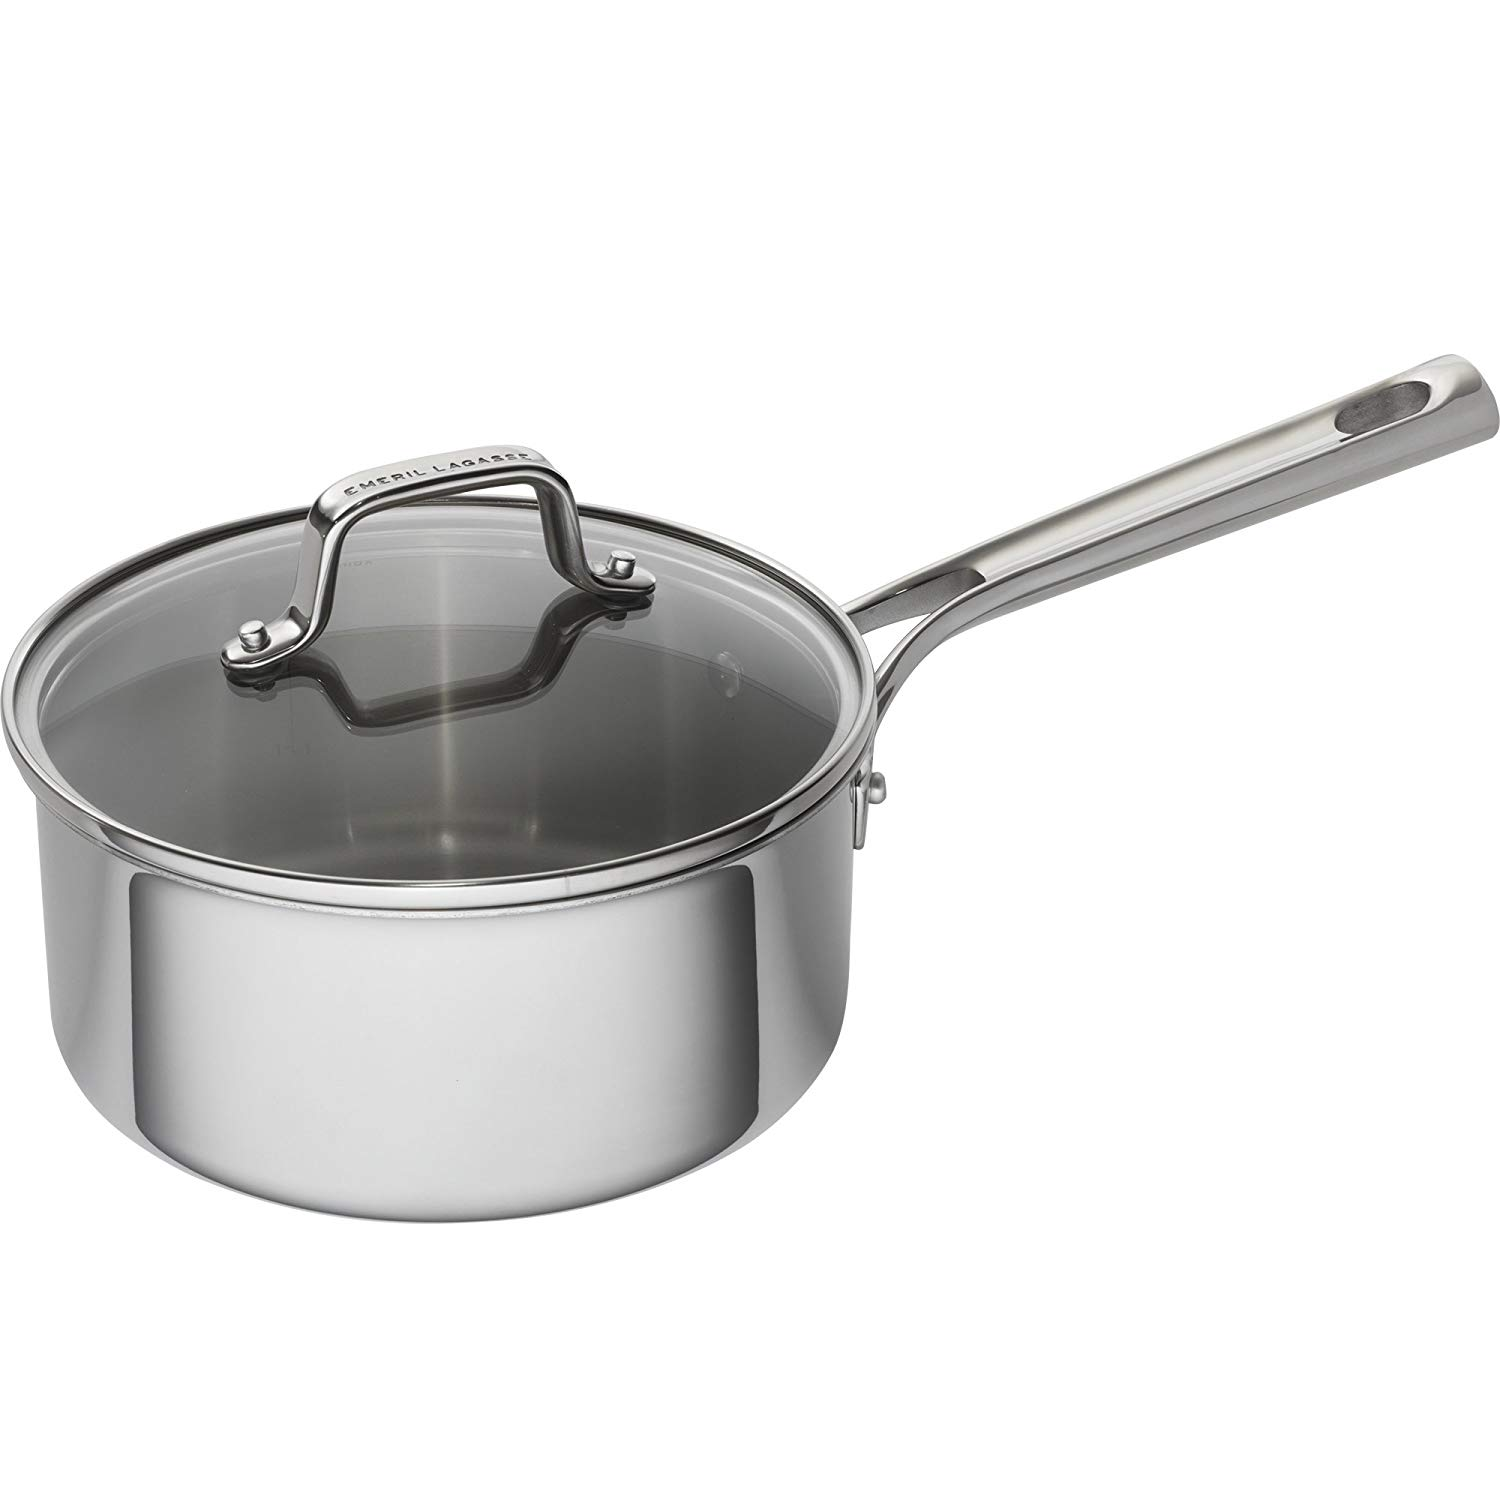 Stainless steel non -stick saucepan for induction hob